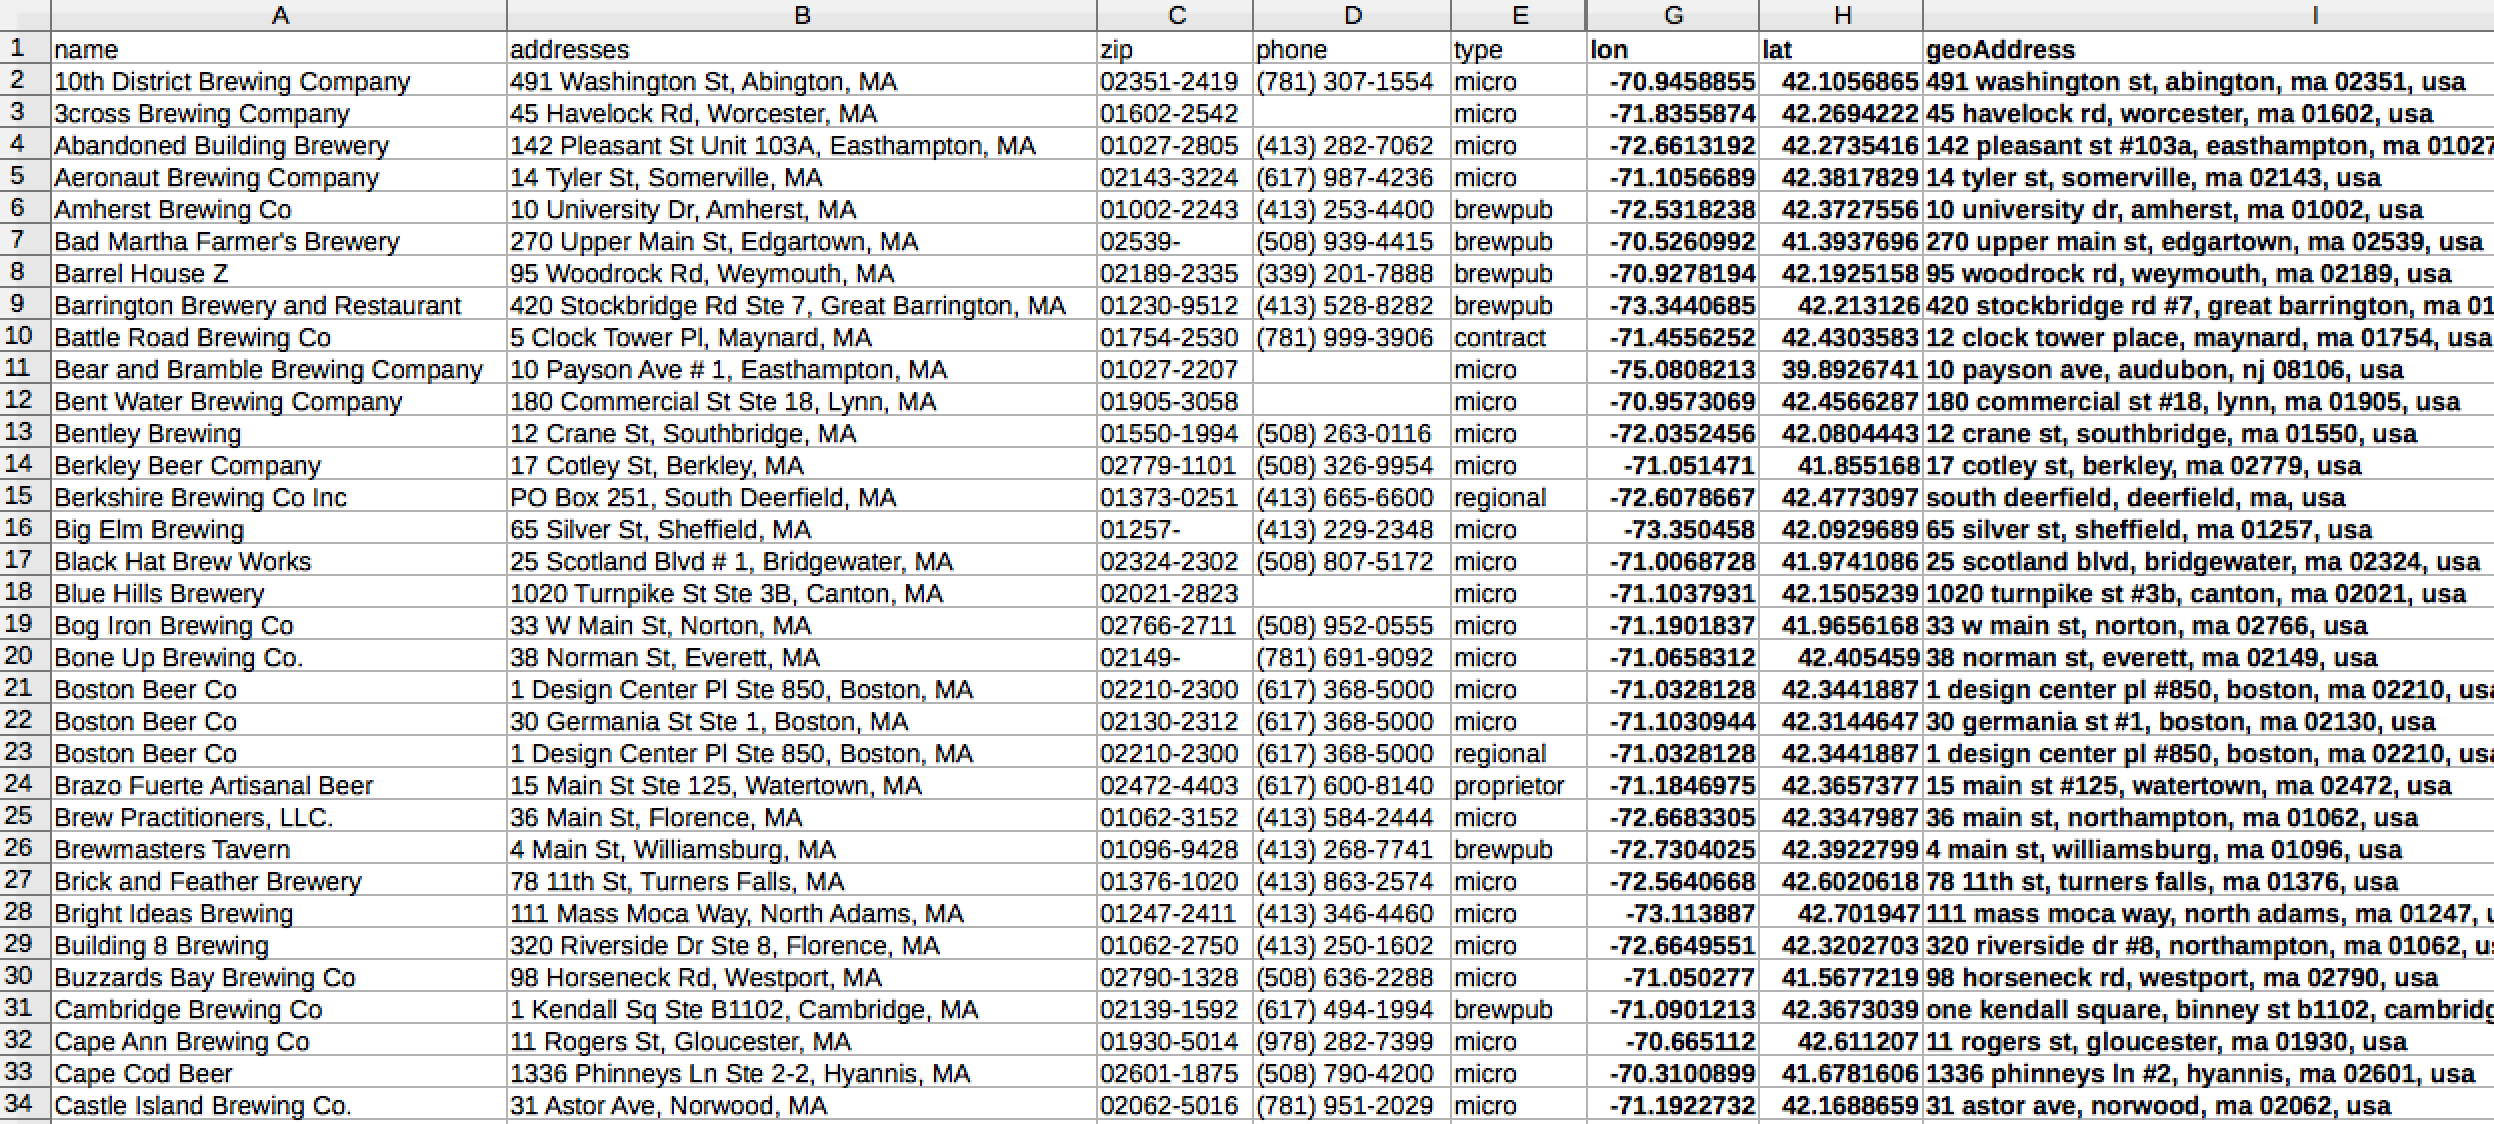 How to geocode a csv of addresses in R - Storybench